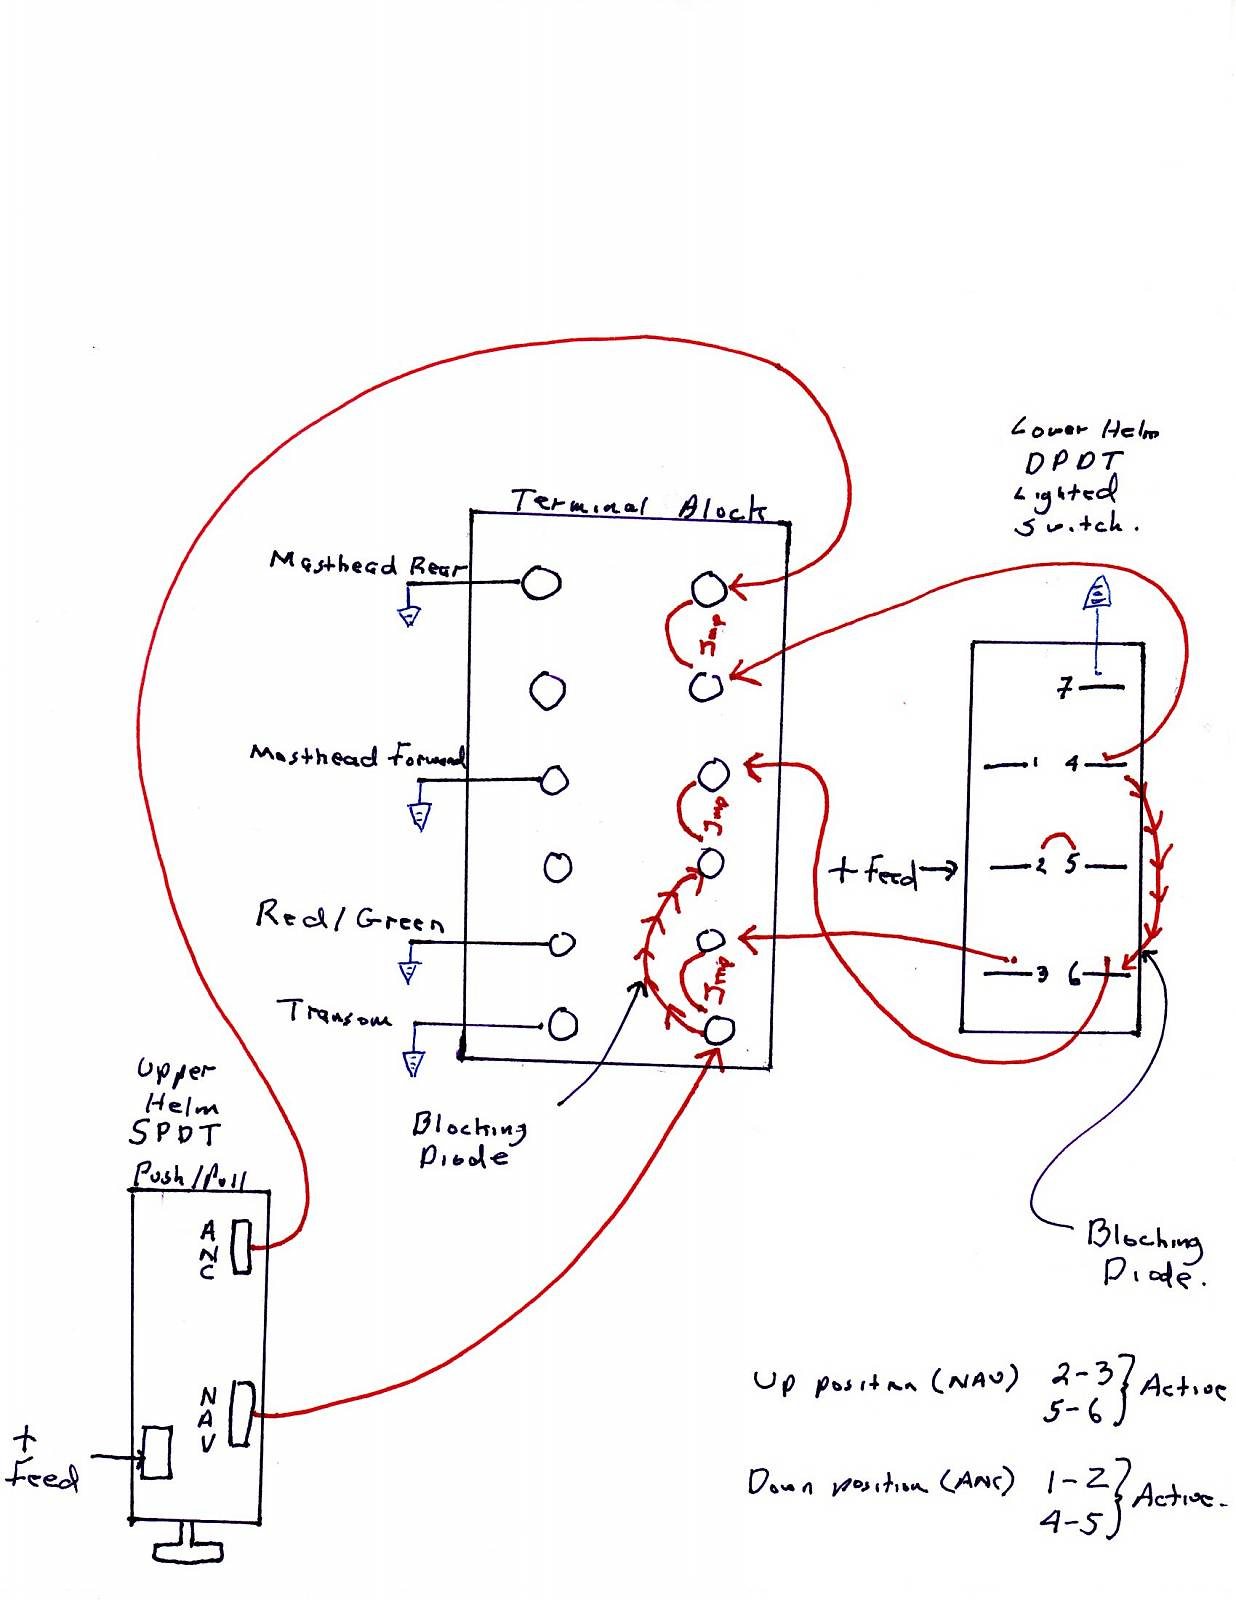 Wiring A Spst Switch Free Download Wiring Diagrams Pictures ... on illuminated rocker switch, illuminated switch circuit, illuminated toggle switch wiring, illuminated switch schematic, illuminated switch transmission,